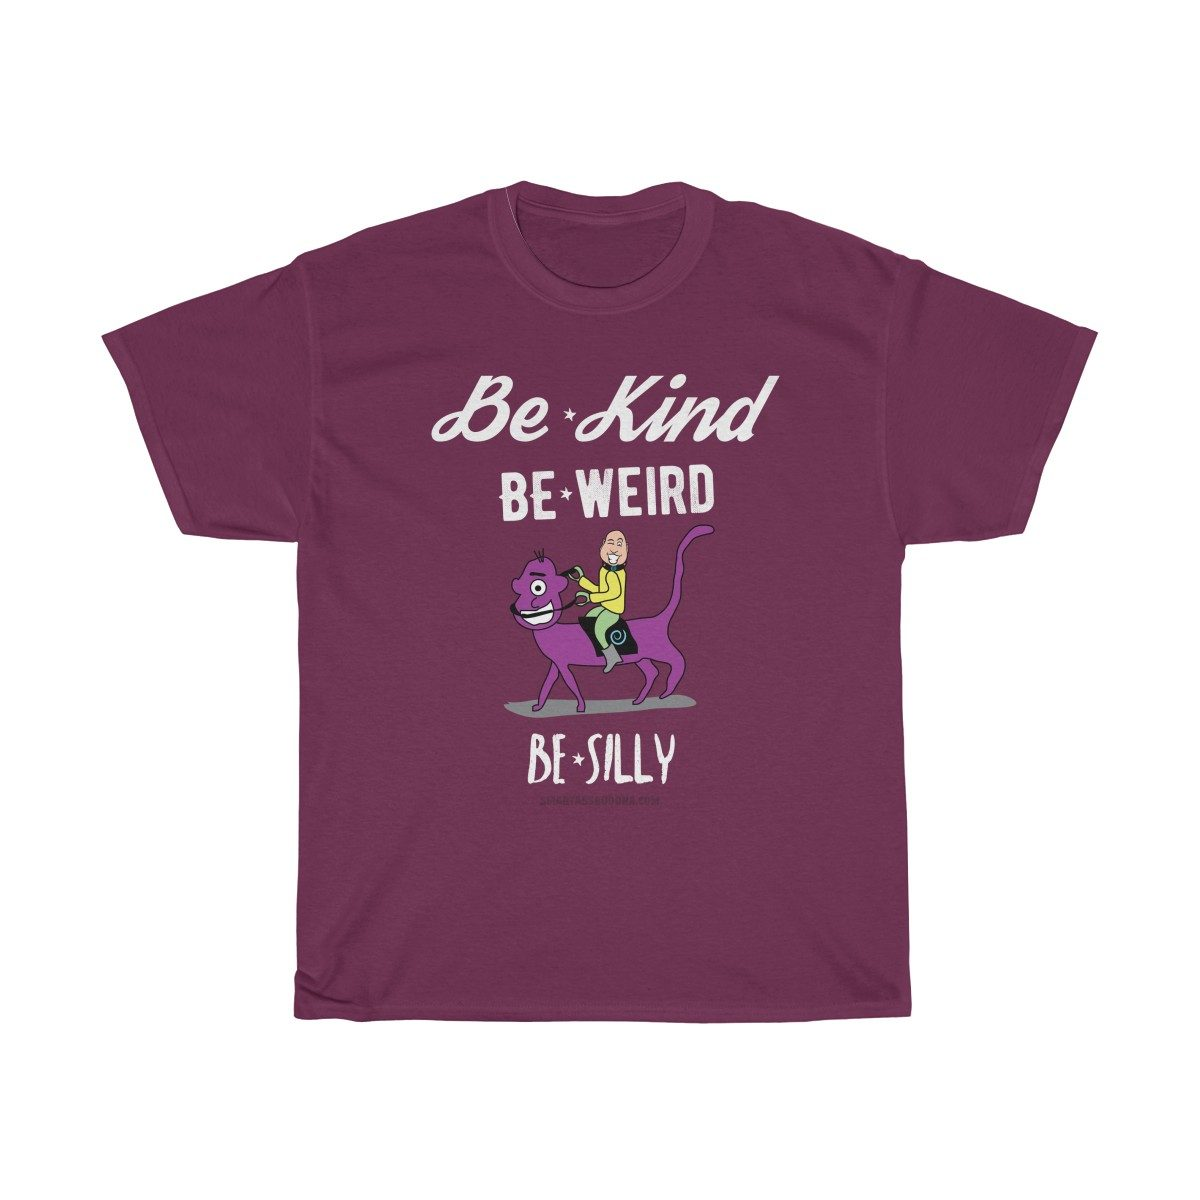 be-kind-be-weird-be-silly-tshirt-random-cool-unique-purple